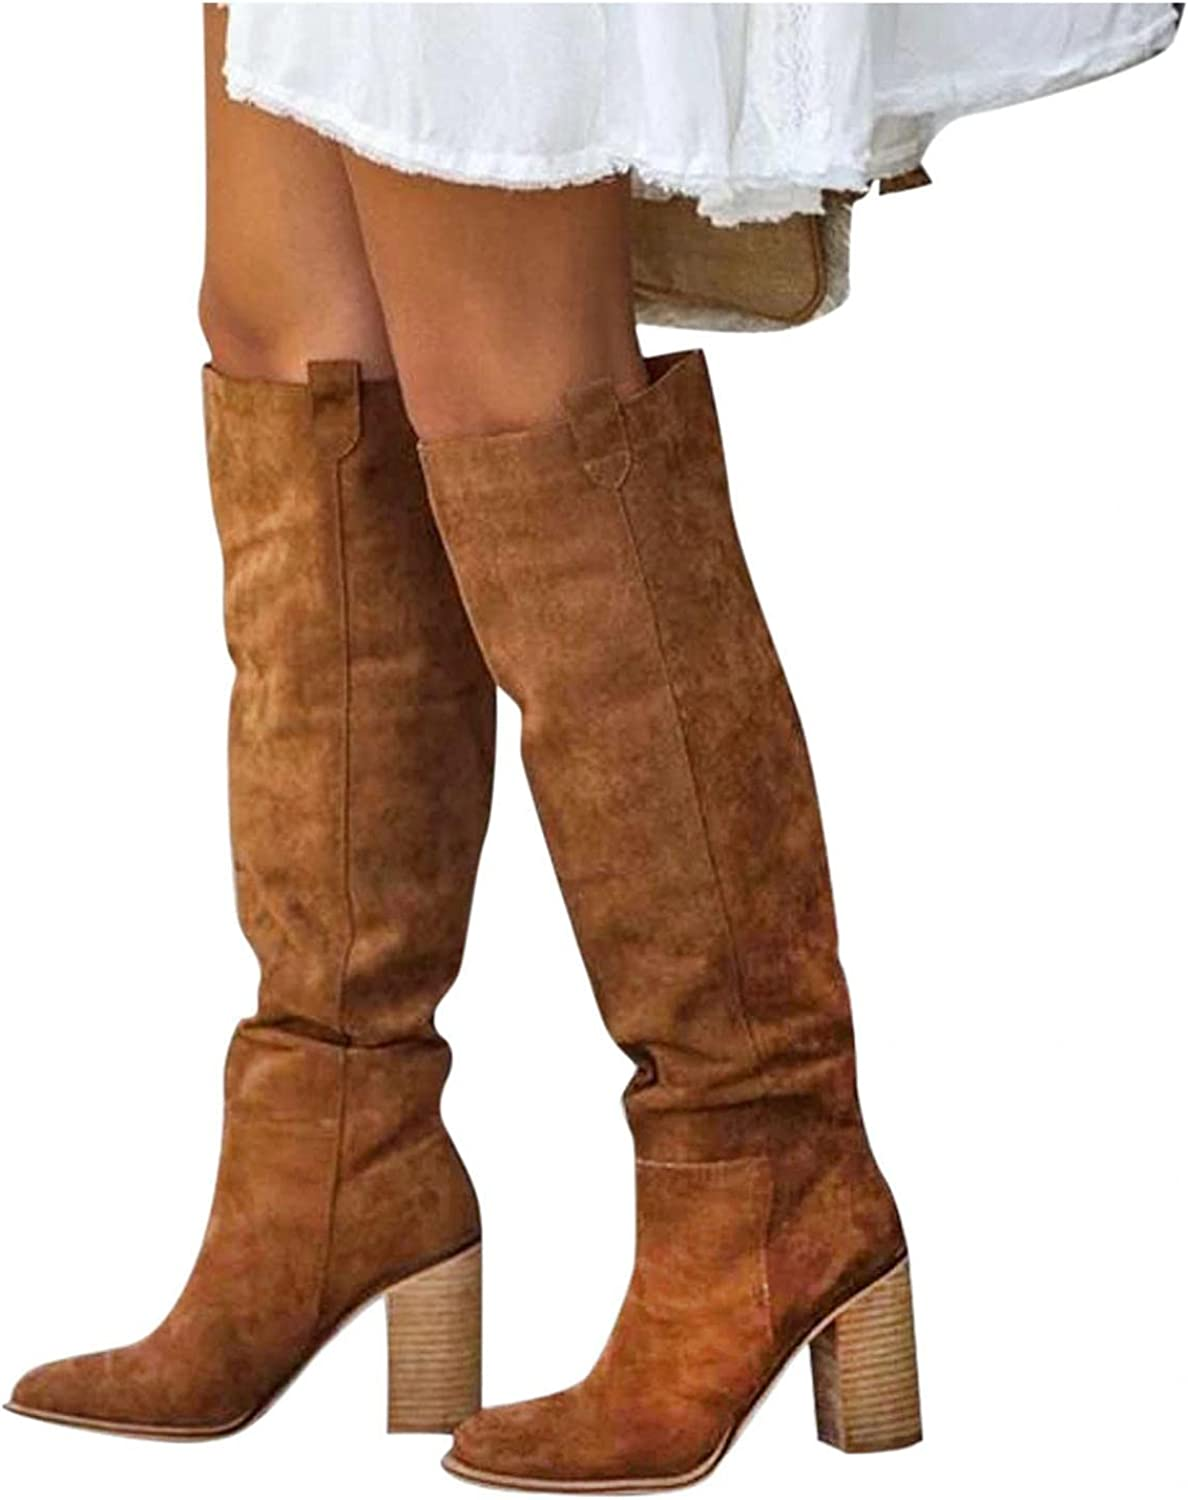 NIMIZIA Knee High Boots for Women Womens Casual Solid Warm Zipper Thick Heel Long Boots Knee High Boots for Women